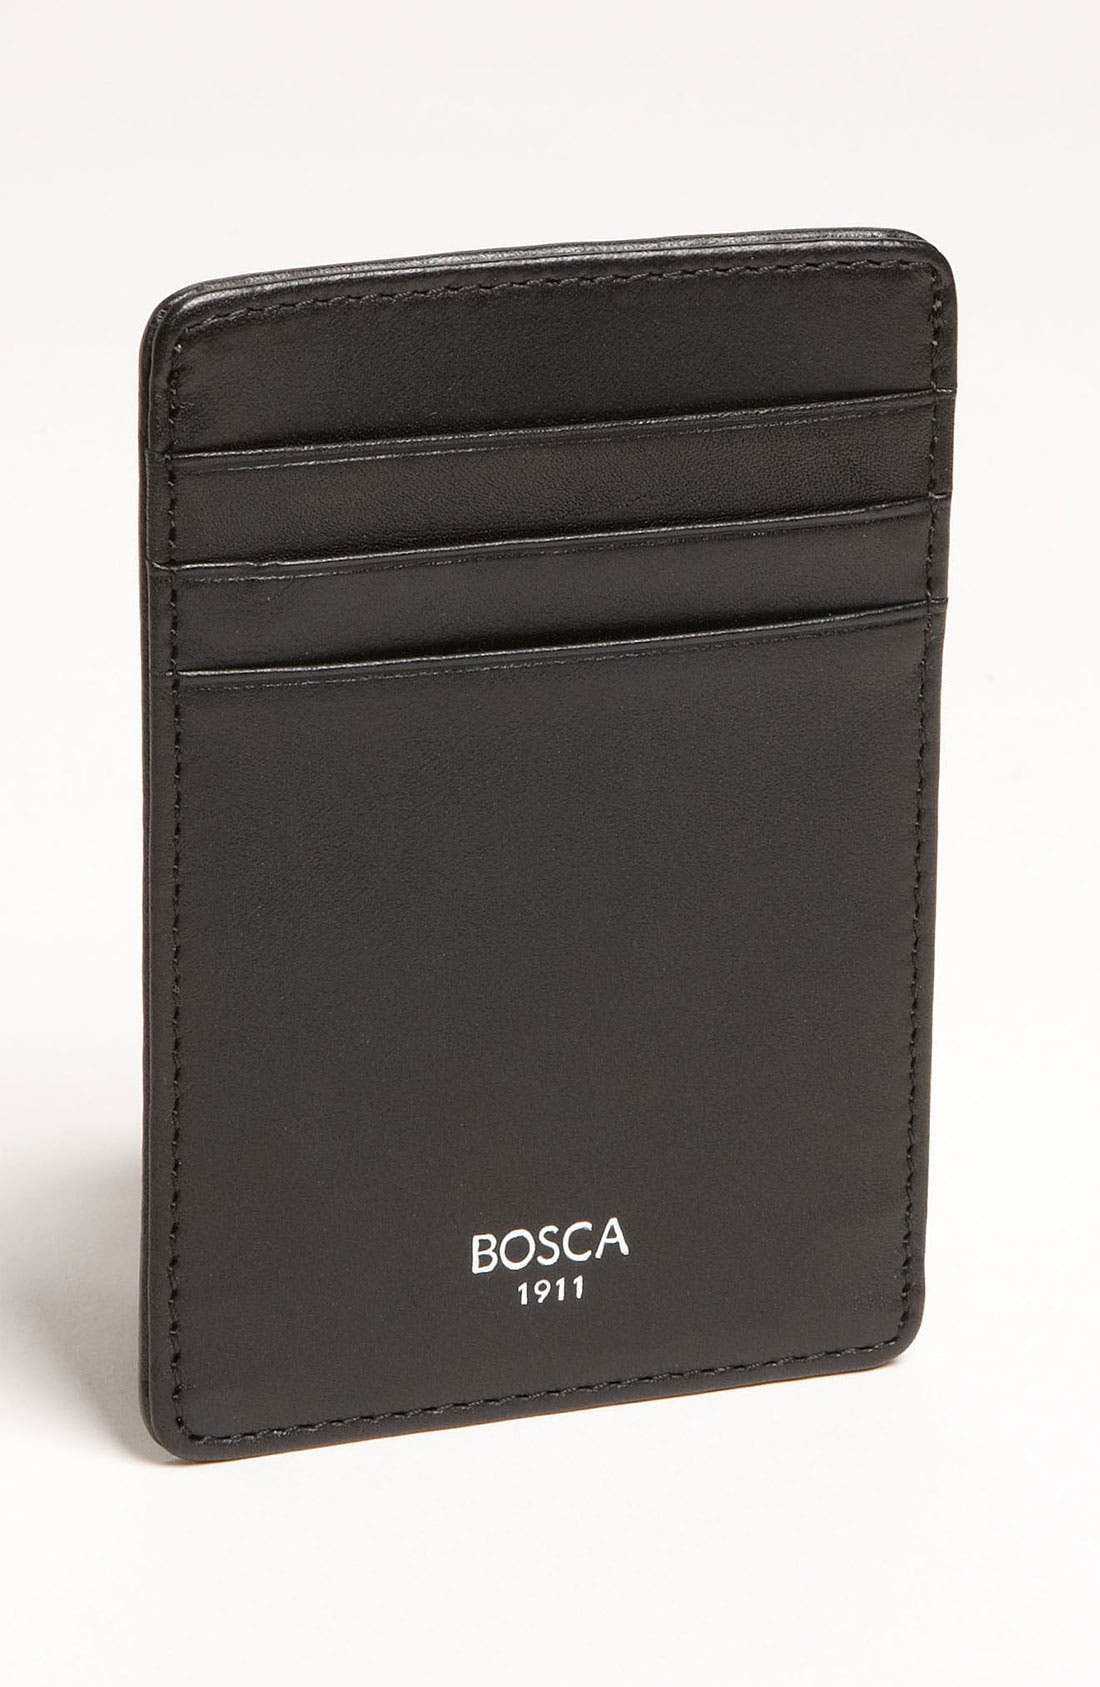 Main Image - Bosca Leather Money Clip Card Case